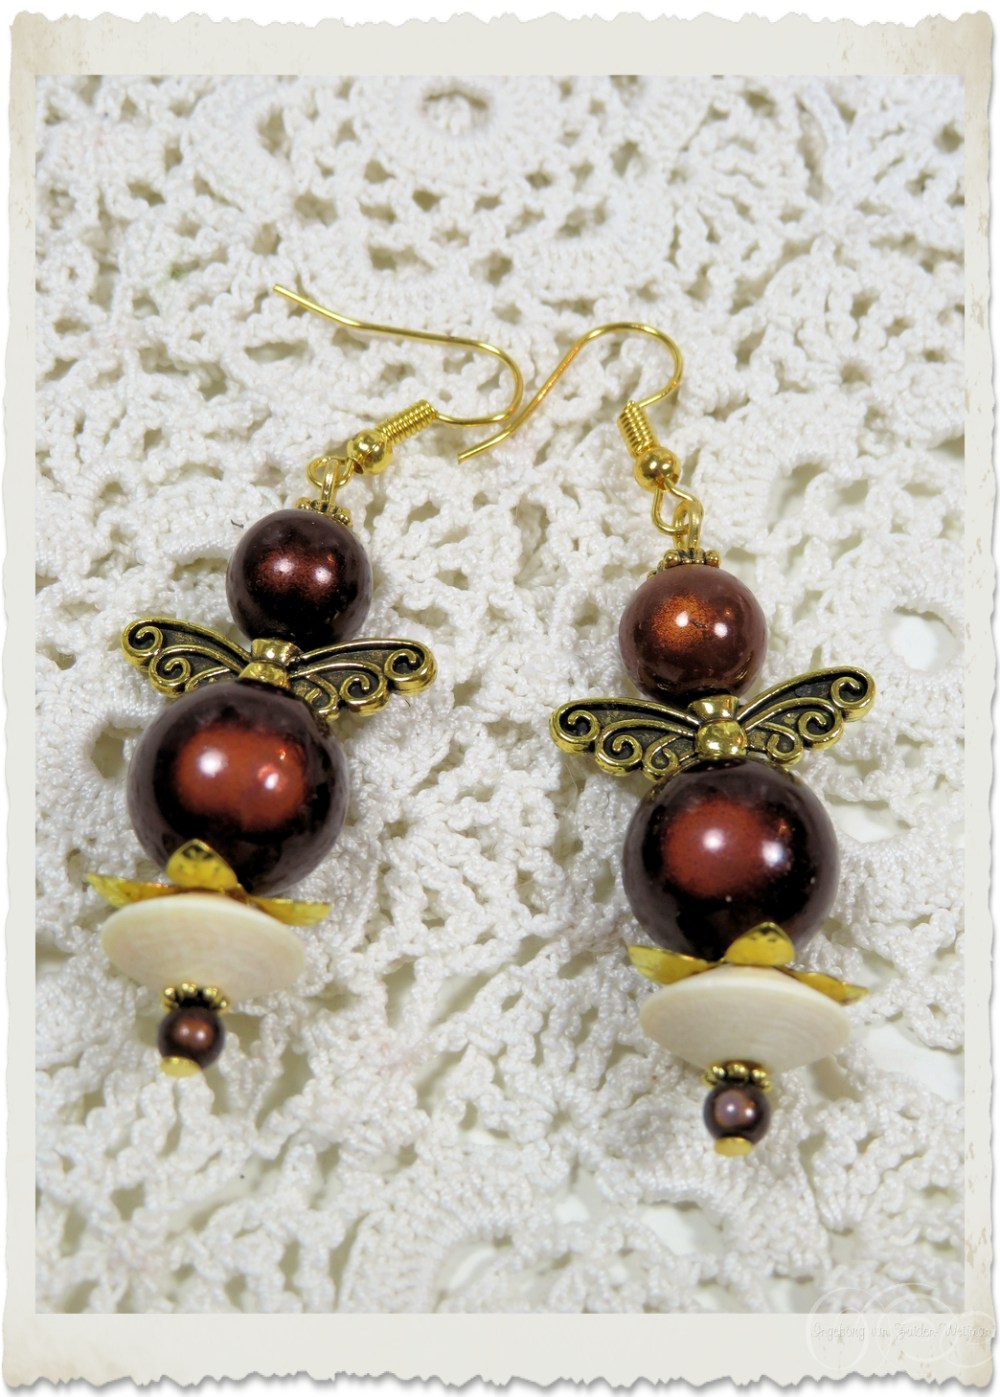 Angel earrings with wooden beads